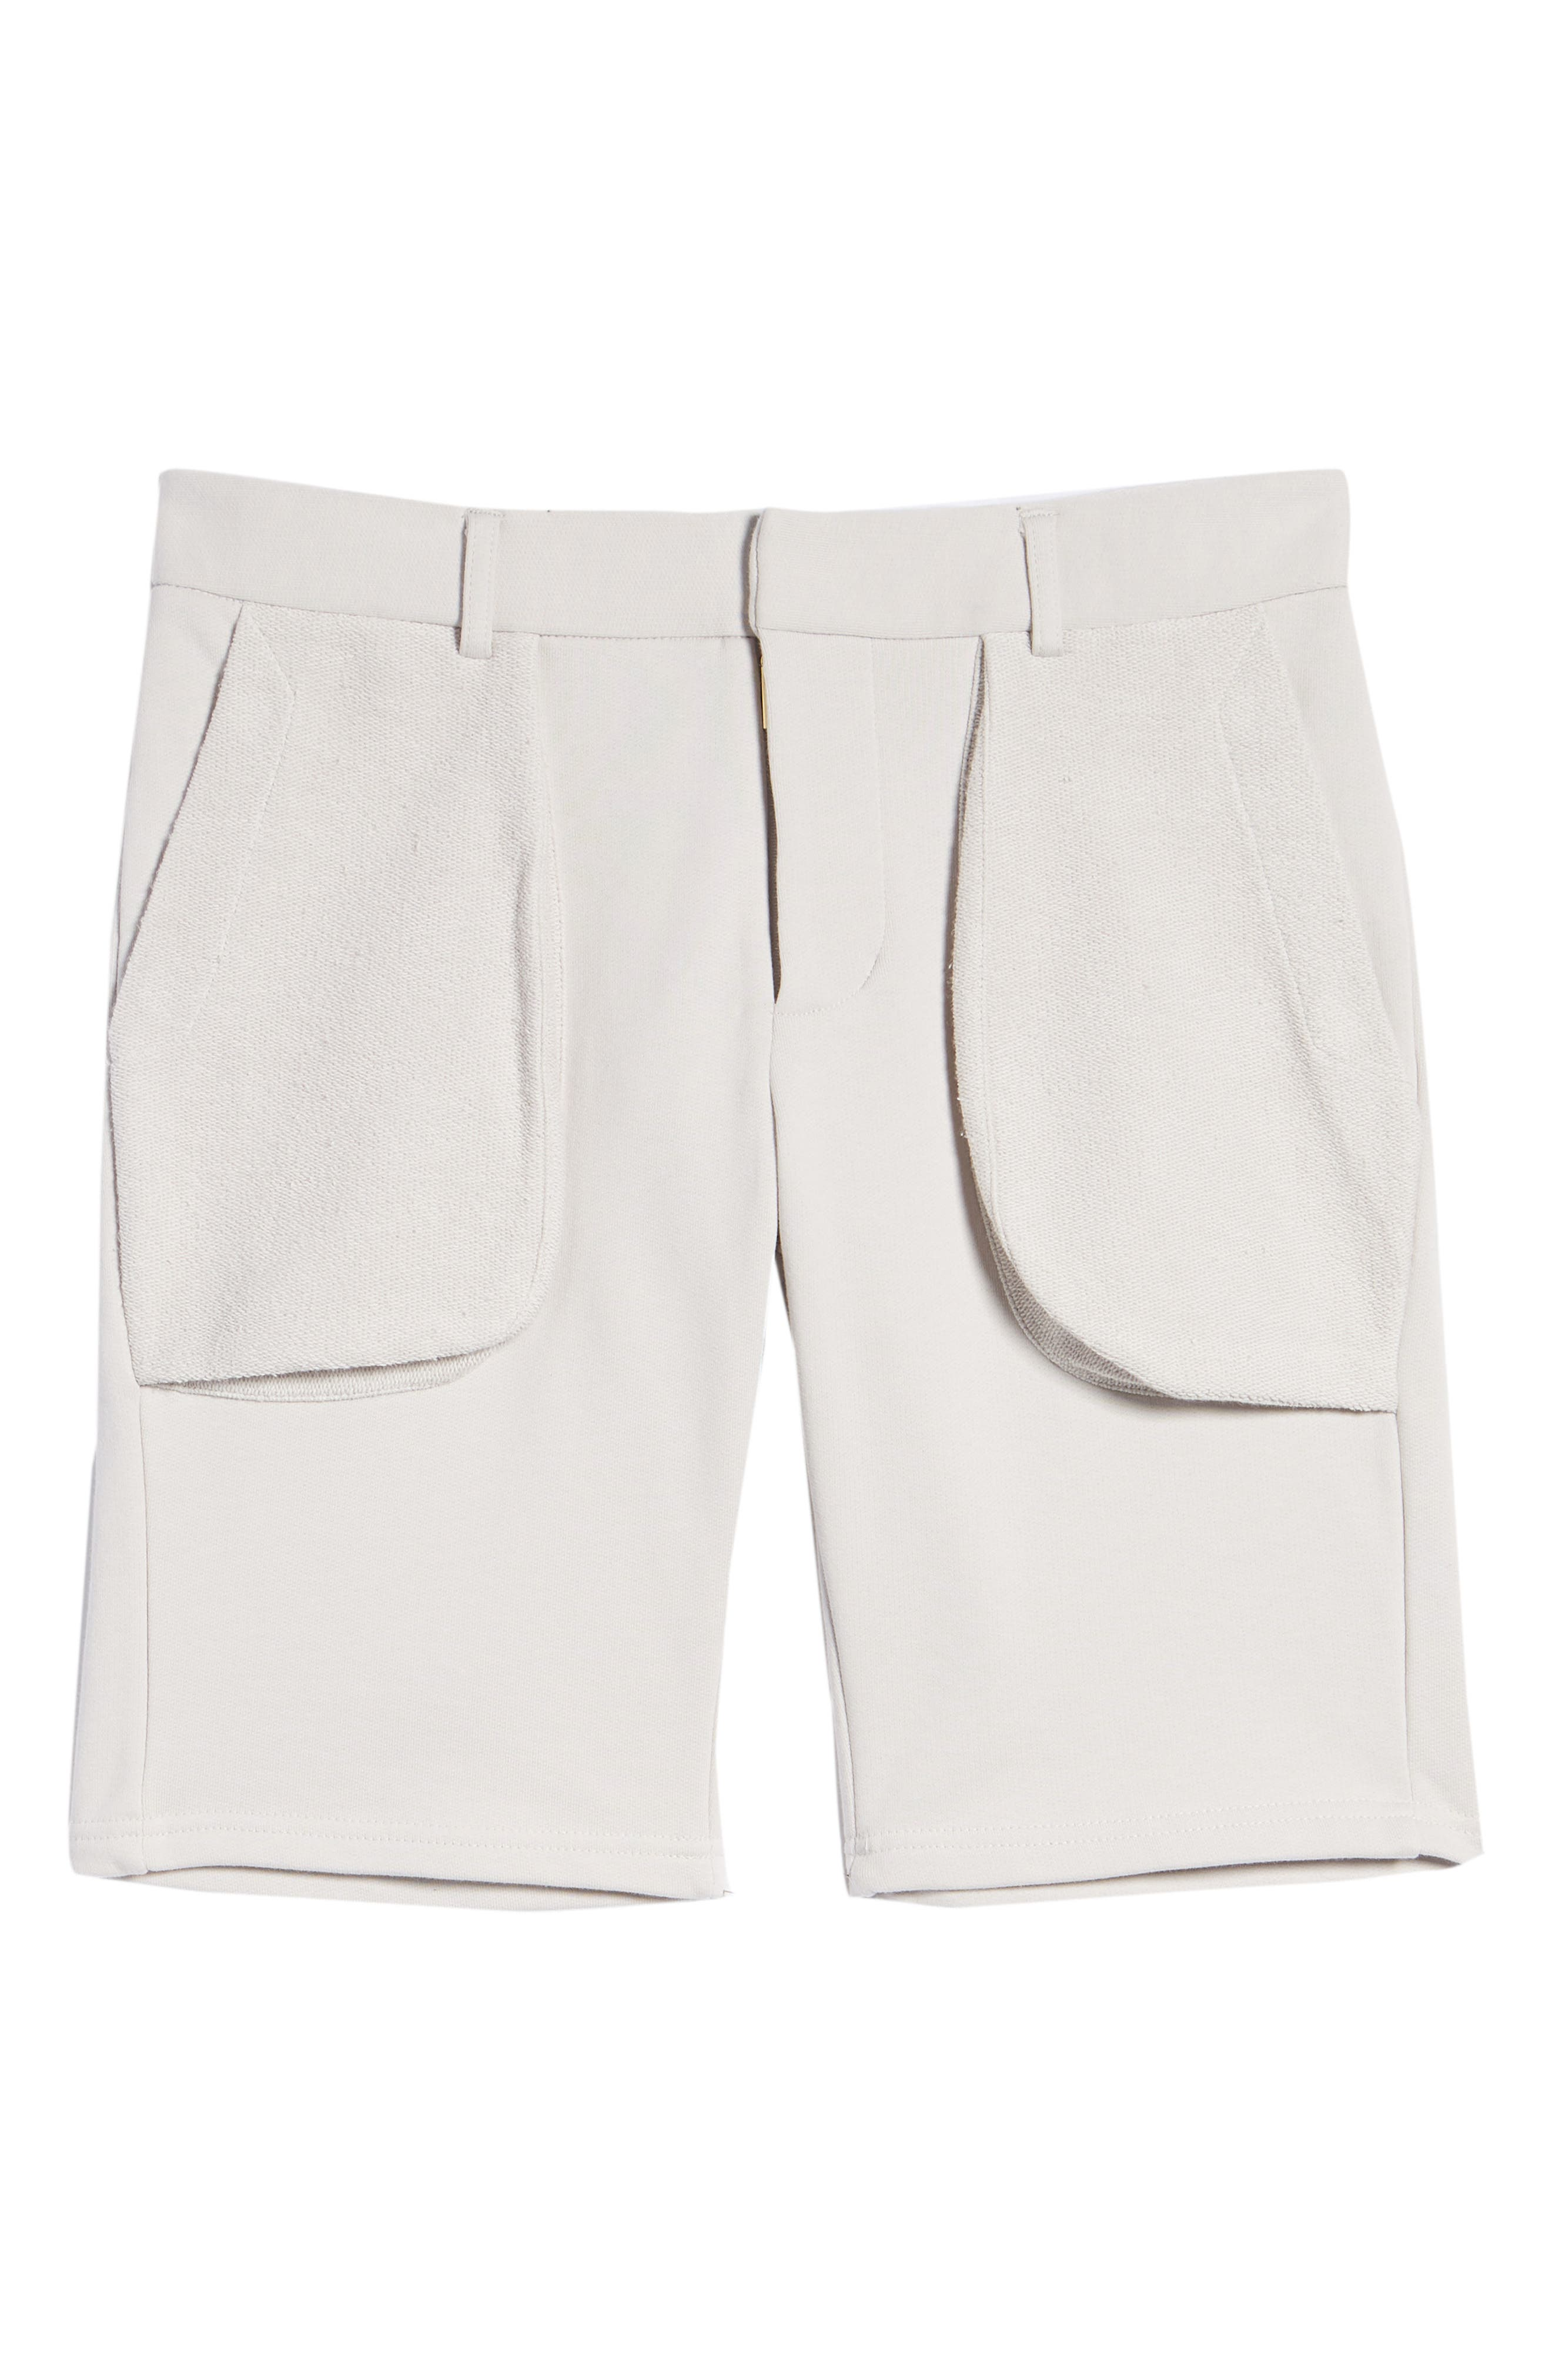 Cargo Shorts,                             Alternate thumbnail 6, color,                             LILAC